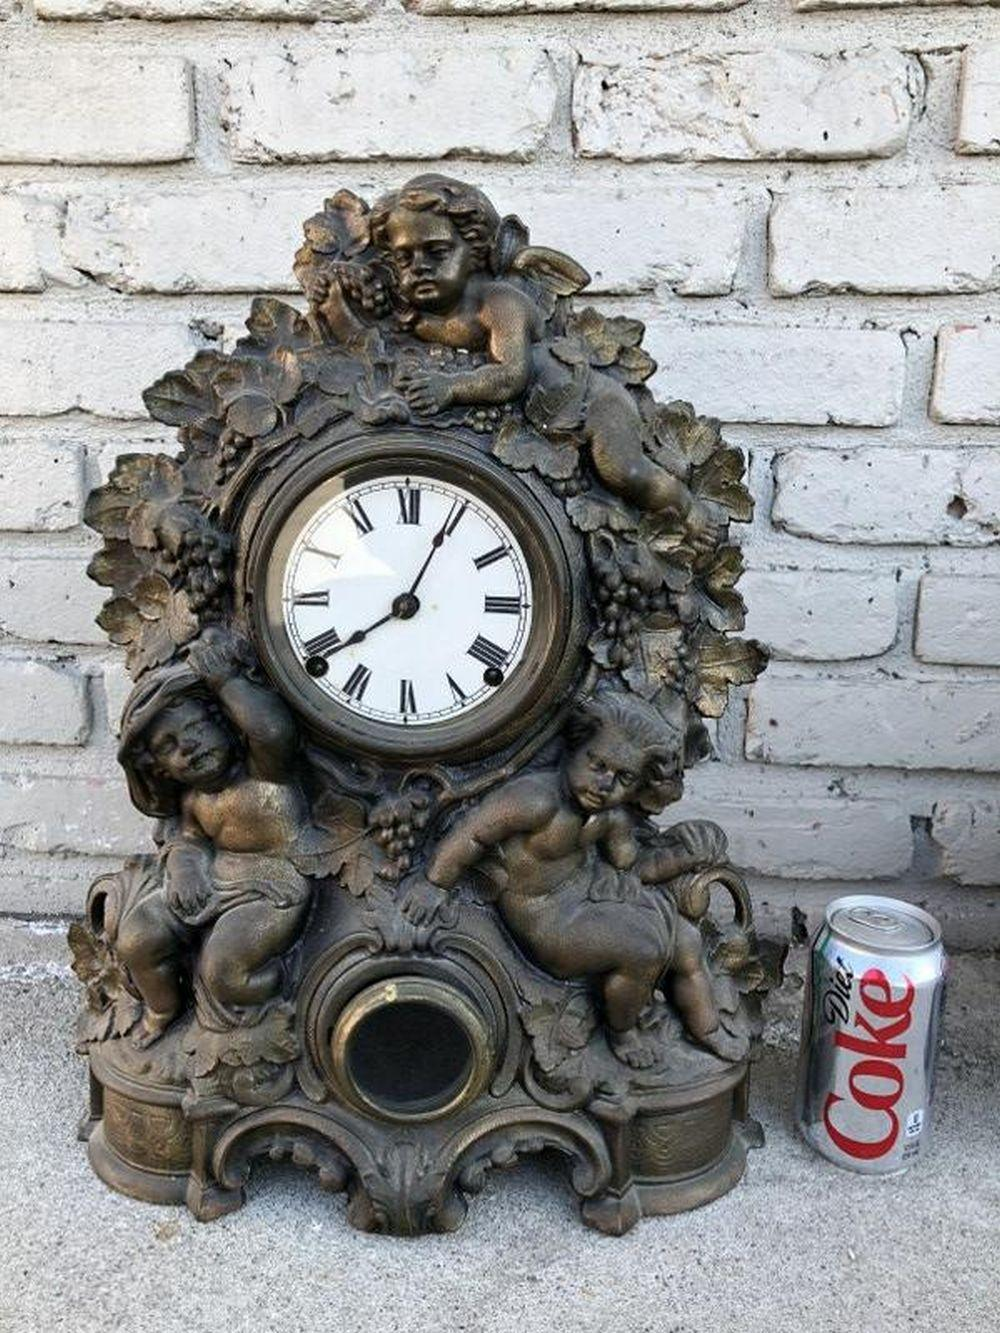 19TH C METAL MANTEL CLOCK WITH 3 CHERUBS AS FOUND